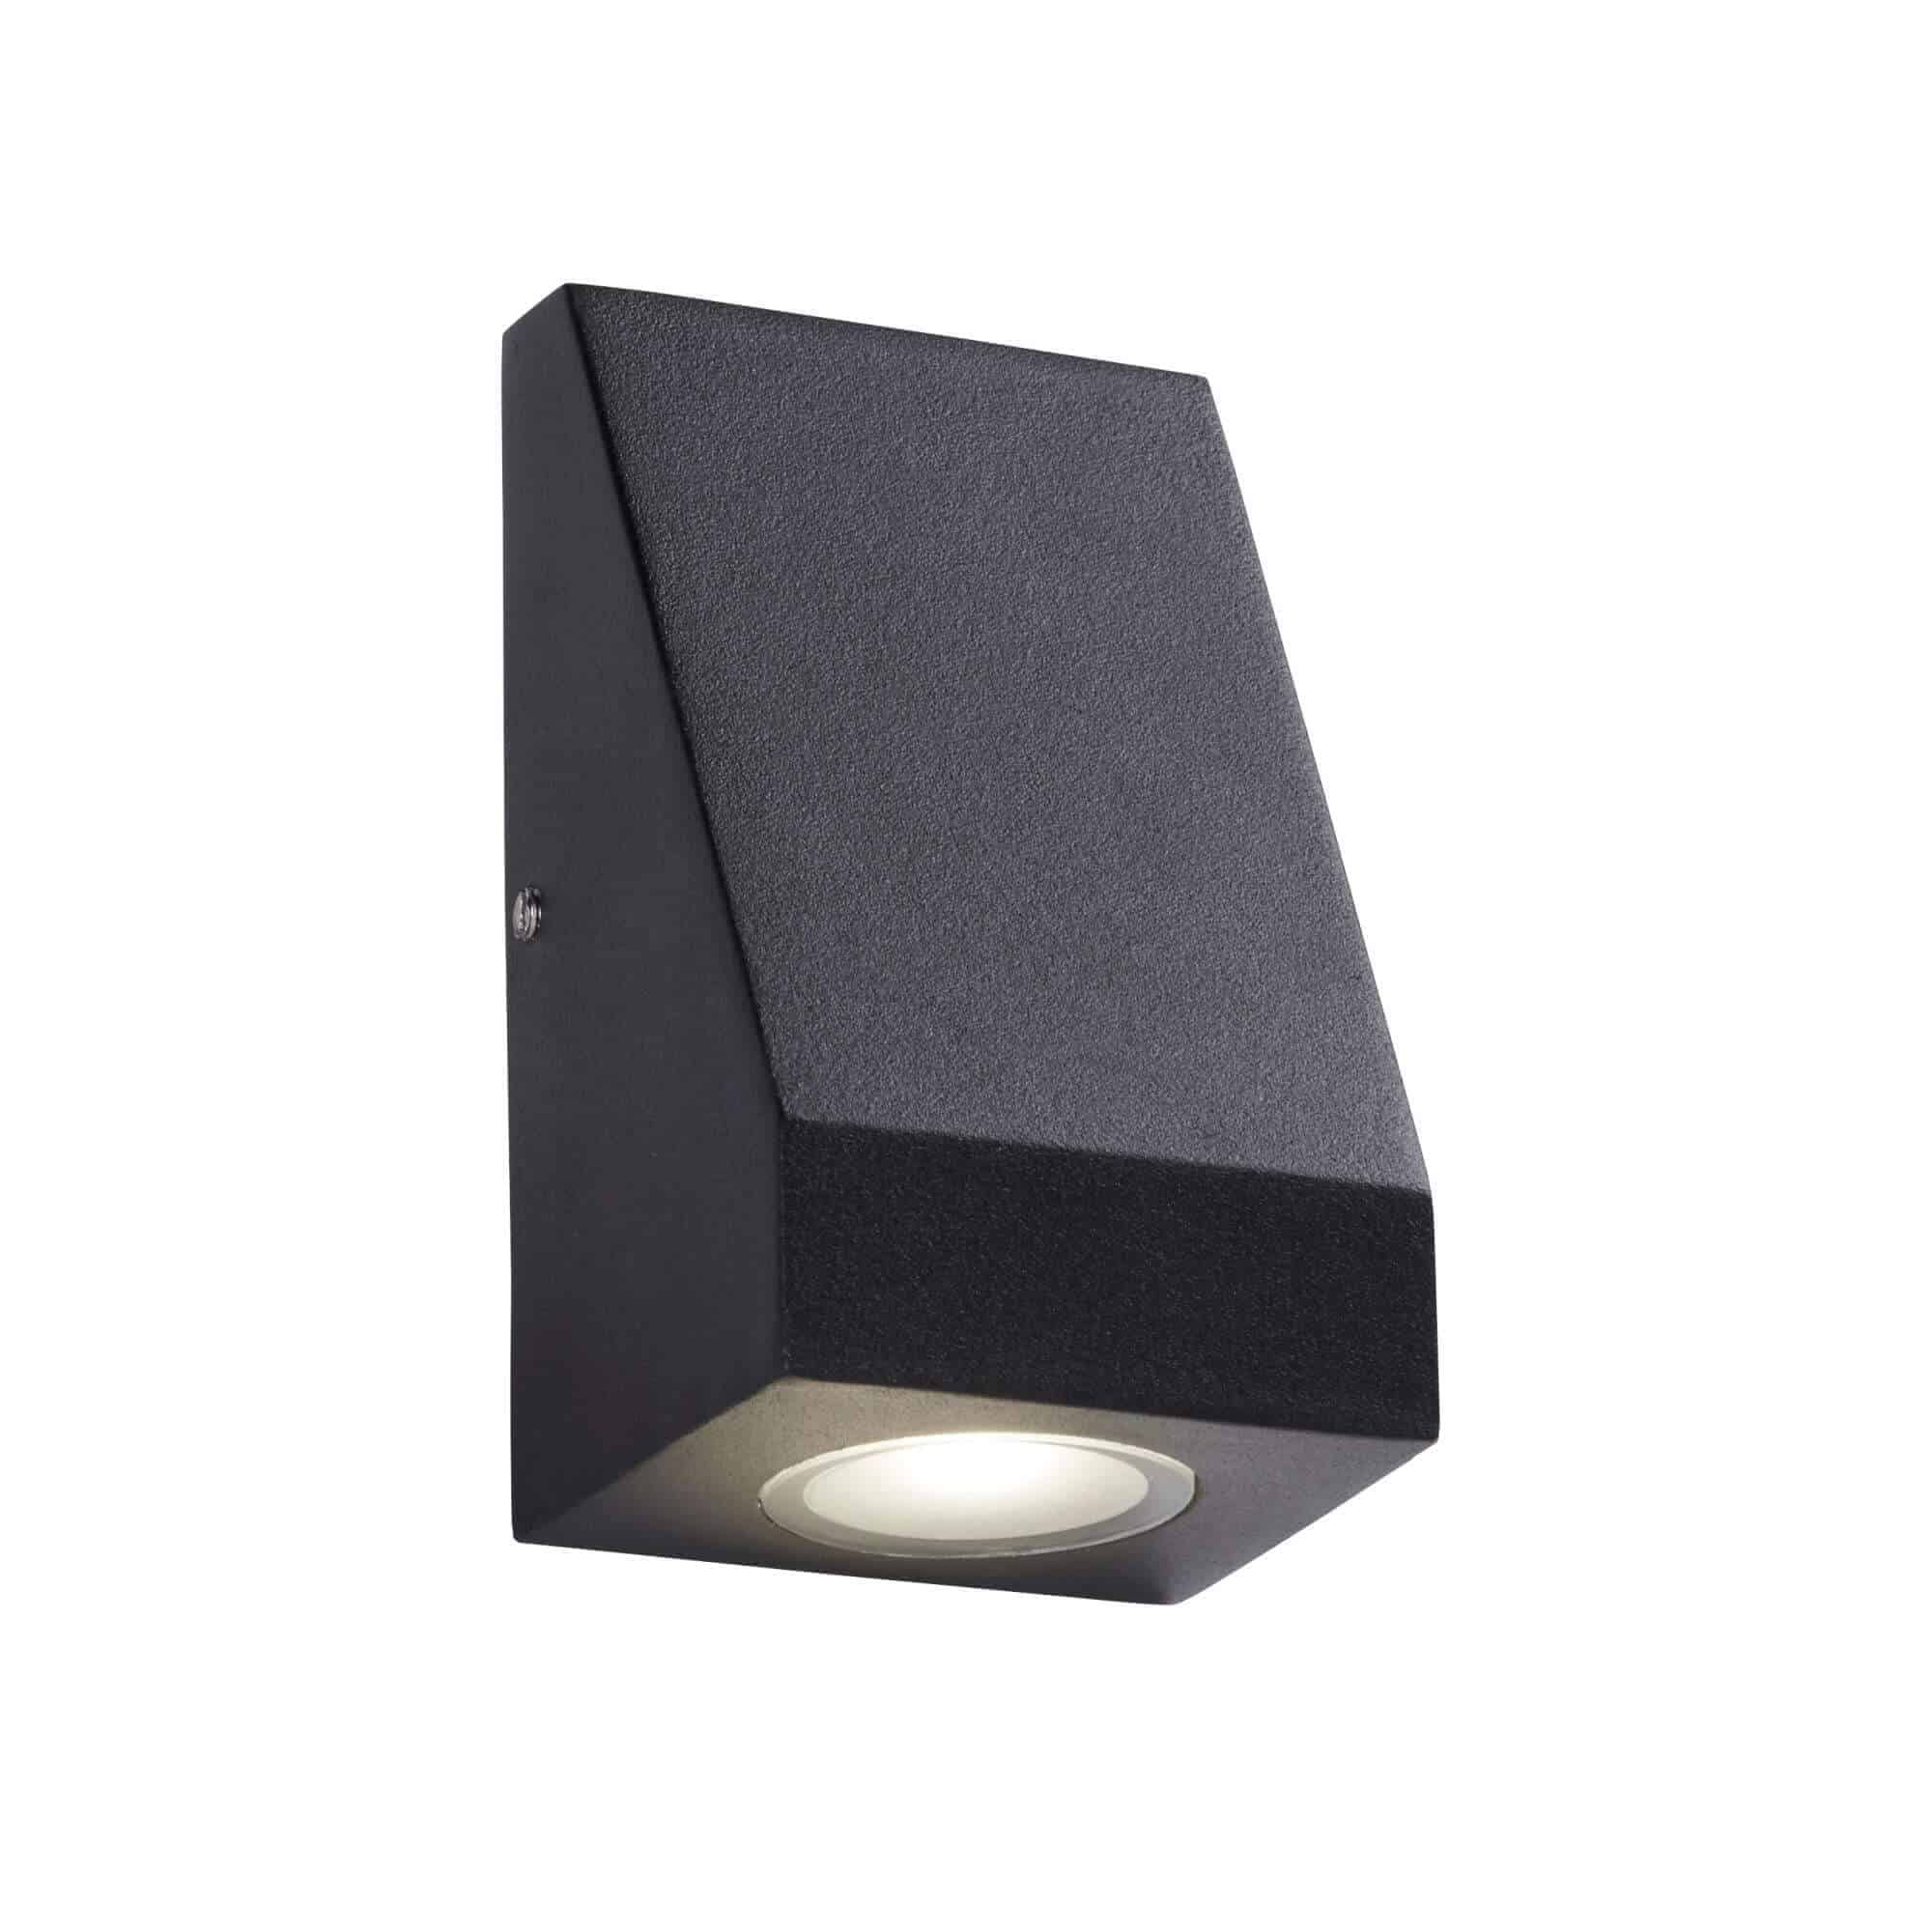 2041-1BK – Searchlight Outdoor Black LED Wall Light